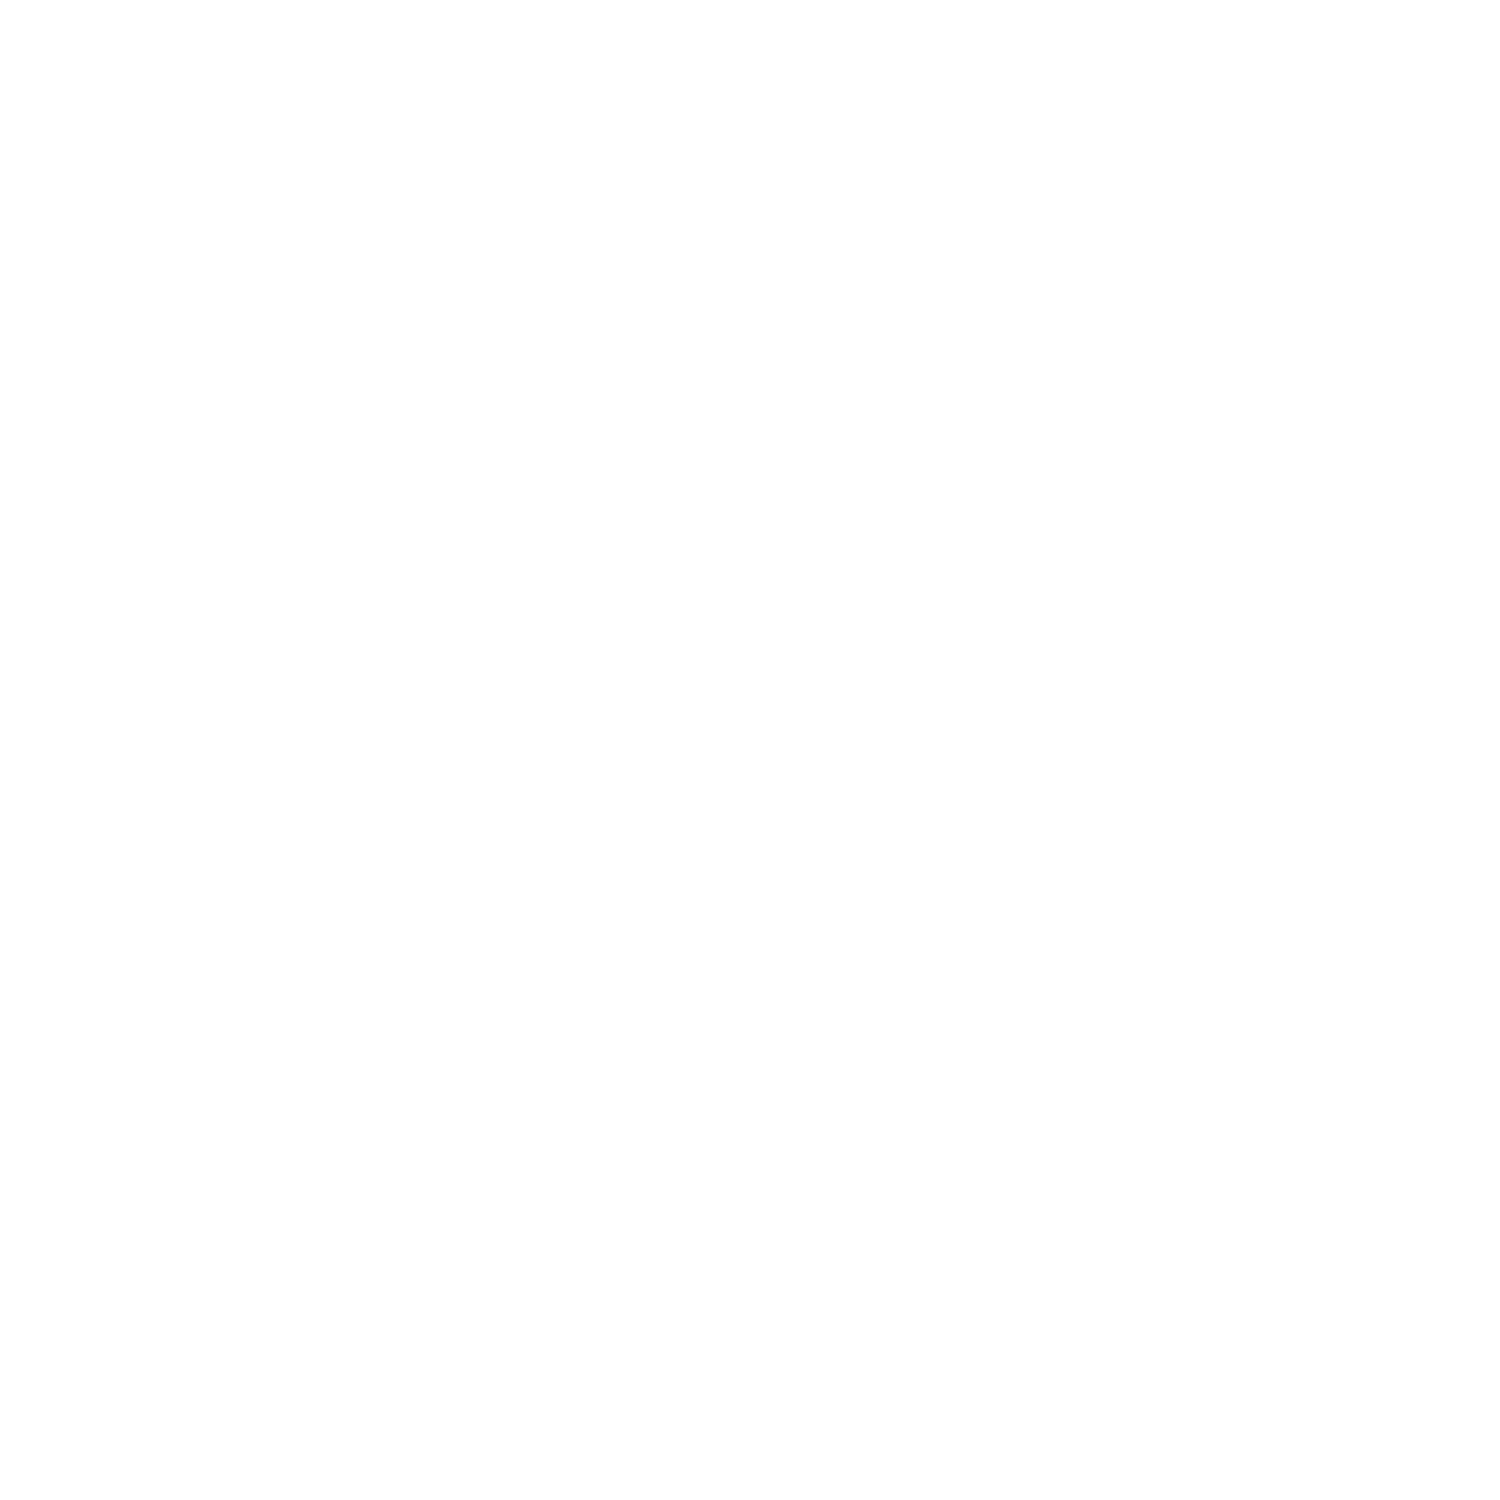 Joey Davis for NC House